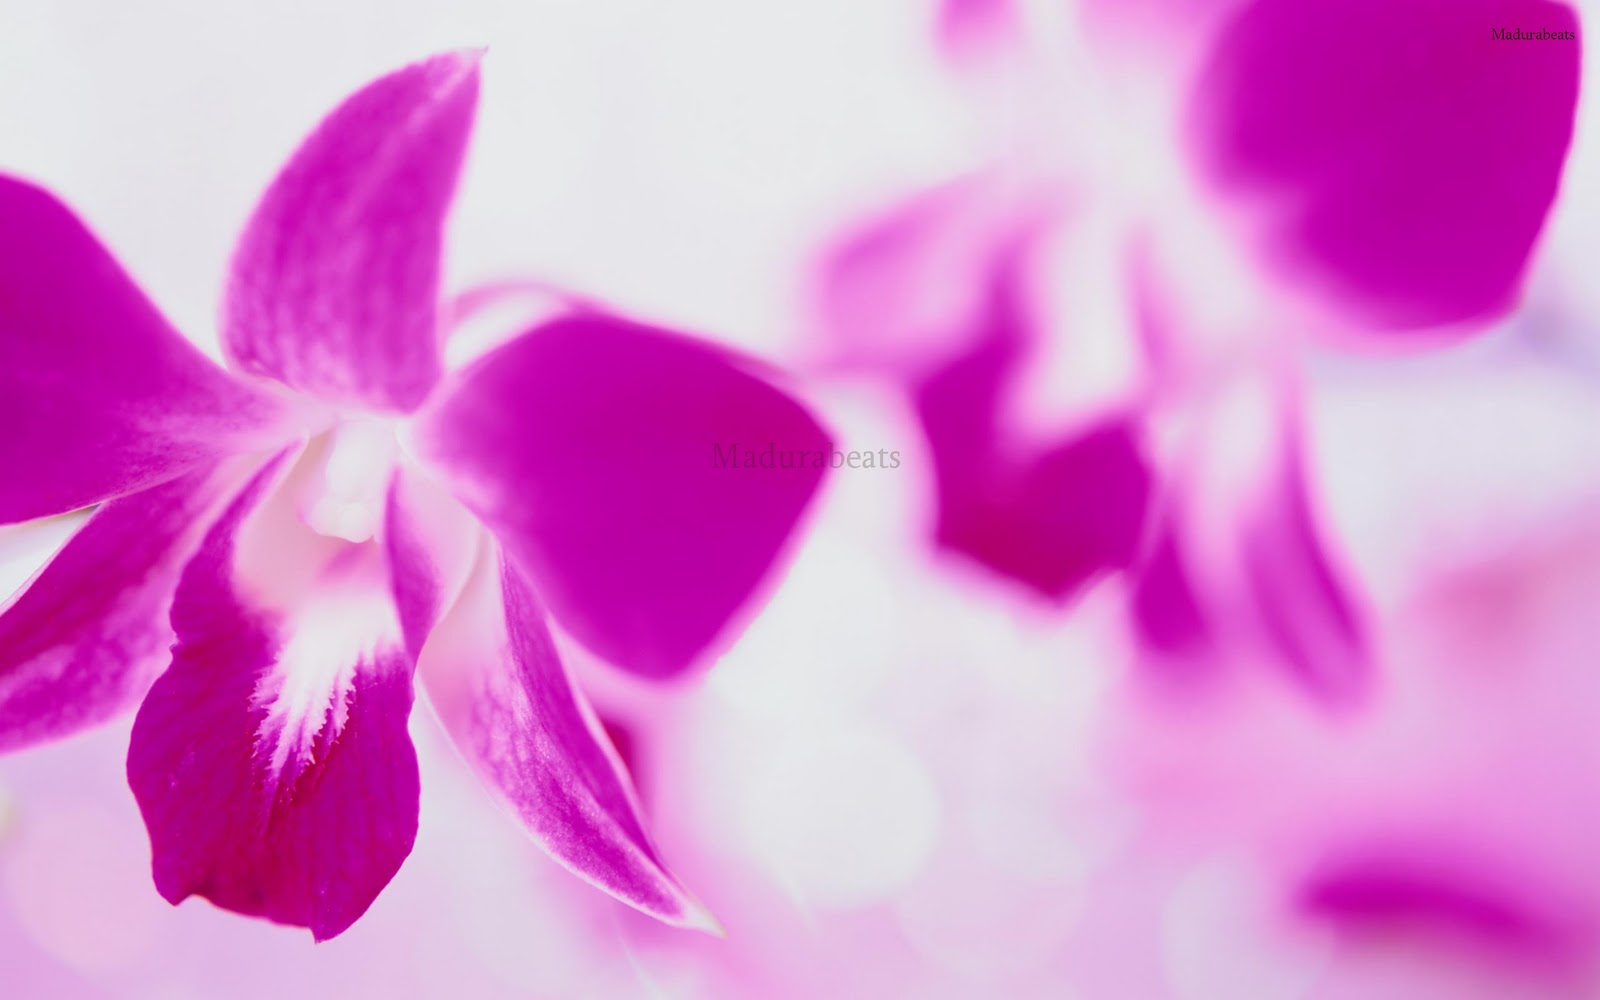 Purple flower with white background,Flower images, Wide screen wallpapers,fresh flowers,Beautiful flowers